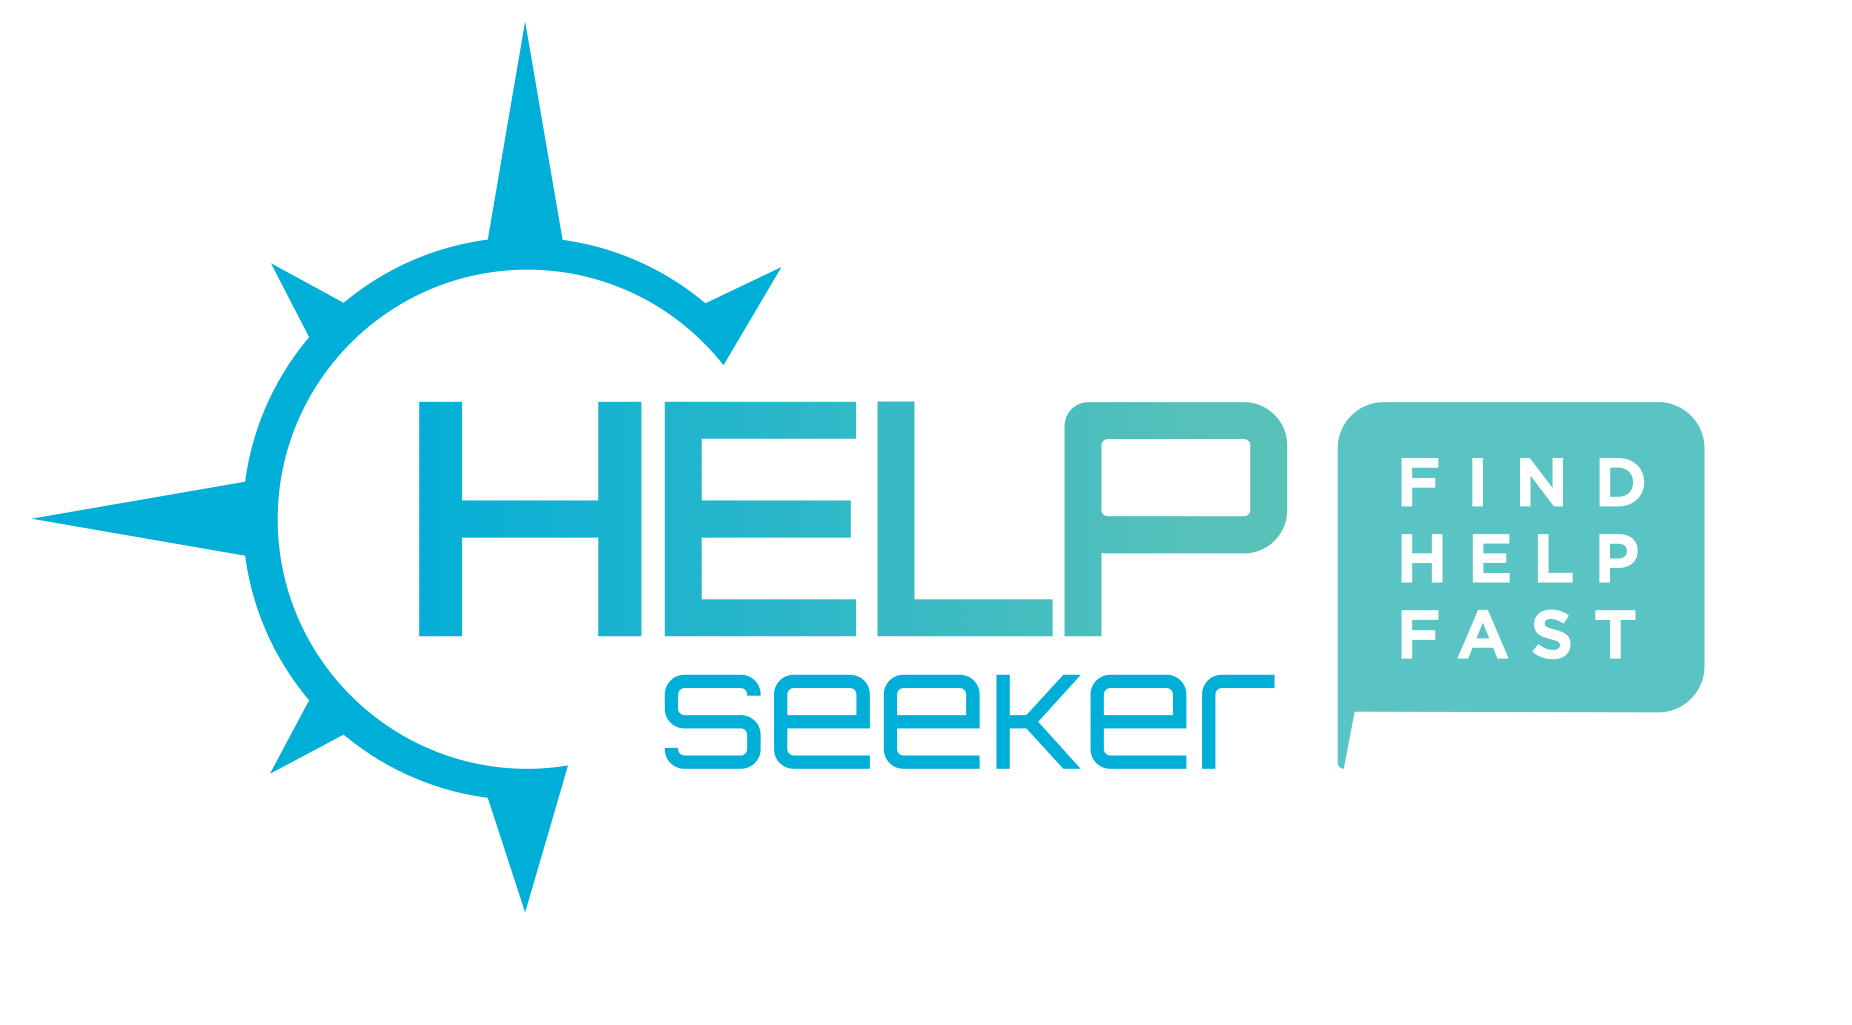 System/asset mapping resources. - Thanks to federal partnerships, system/asset mapping using HelpSeeker has scaled nationally.HelpSeeker provides a real-time resource directory, system/asset mapping and dynamic analytics to help communities and services providers, as well as those looking for help.